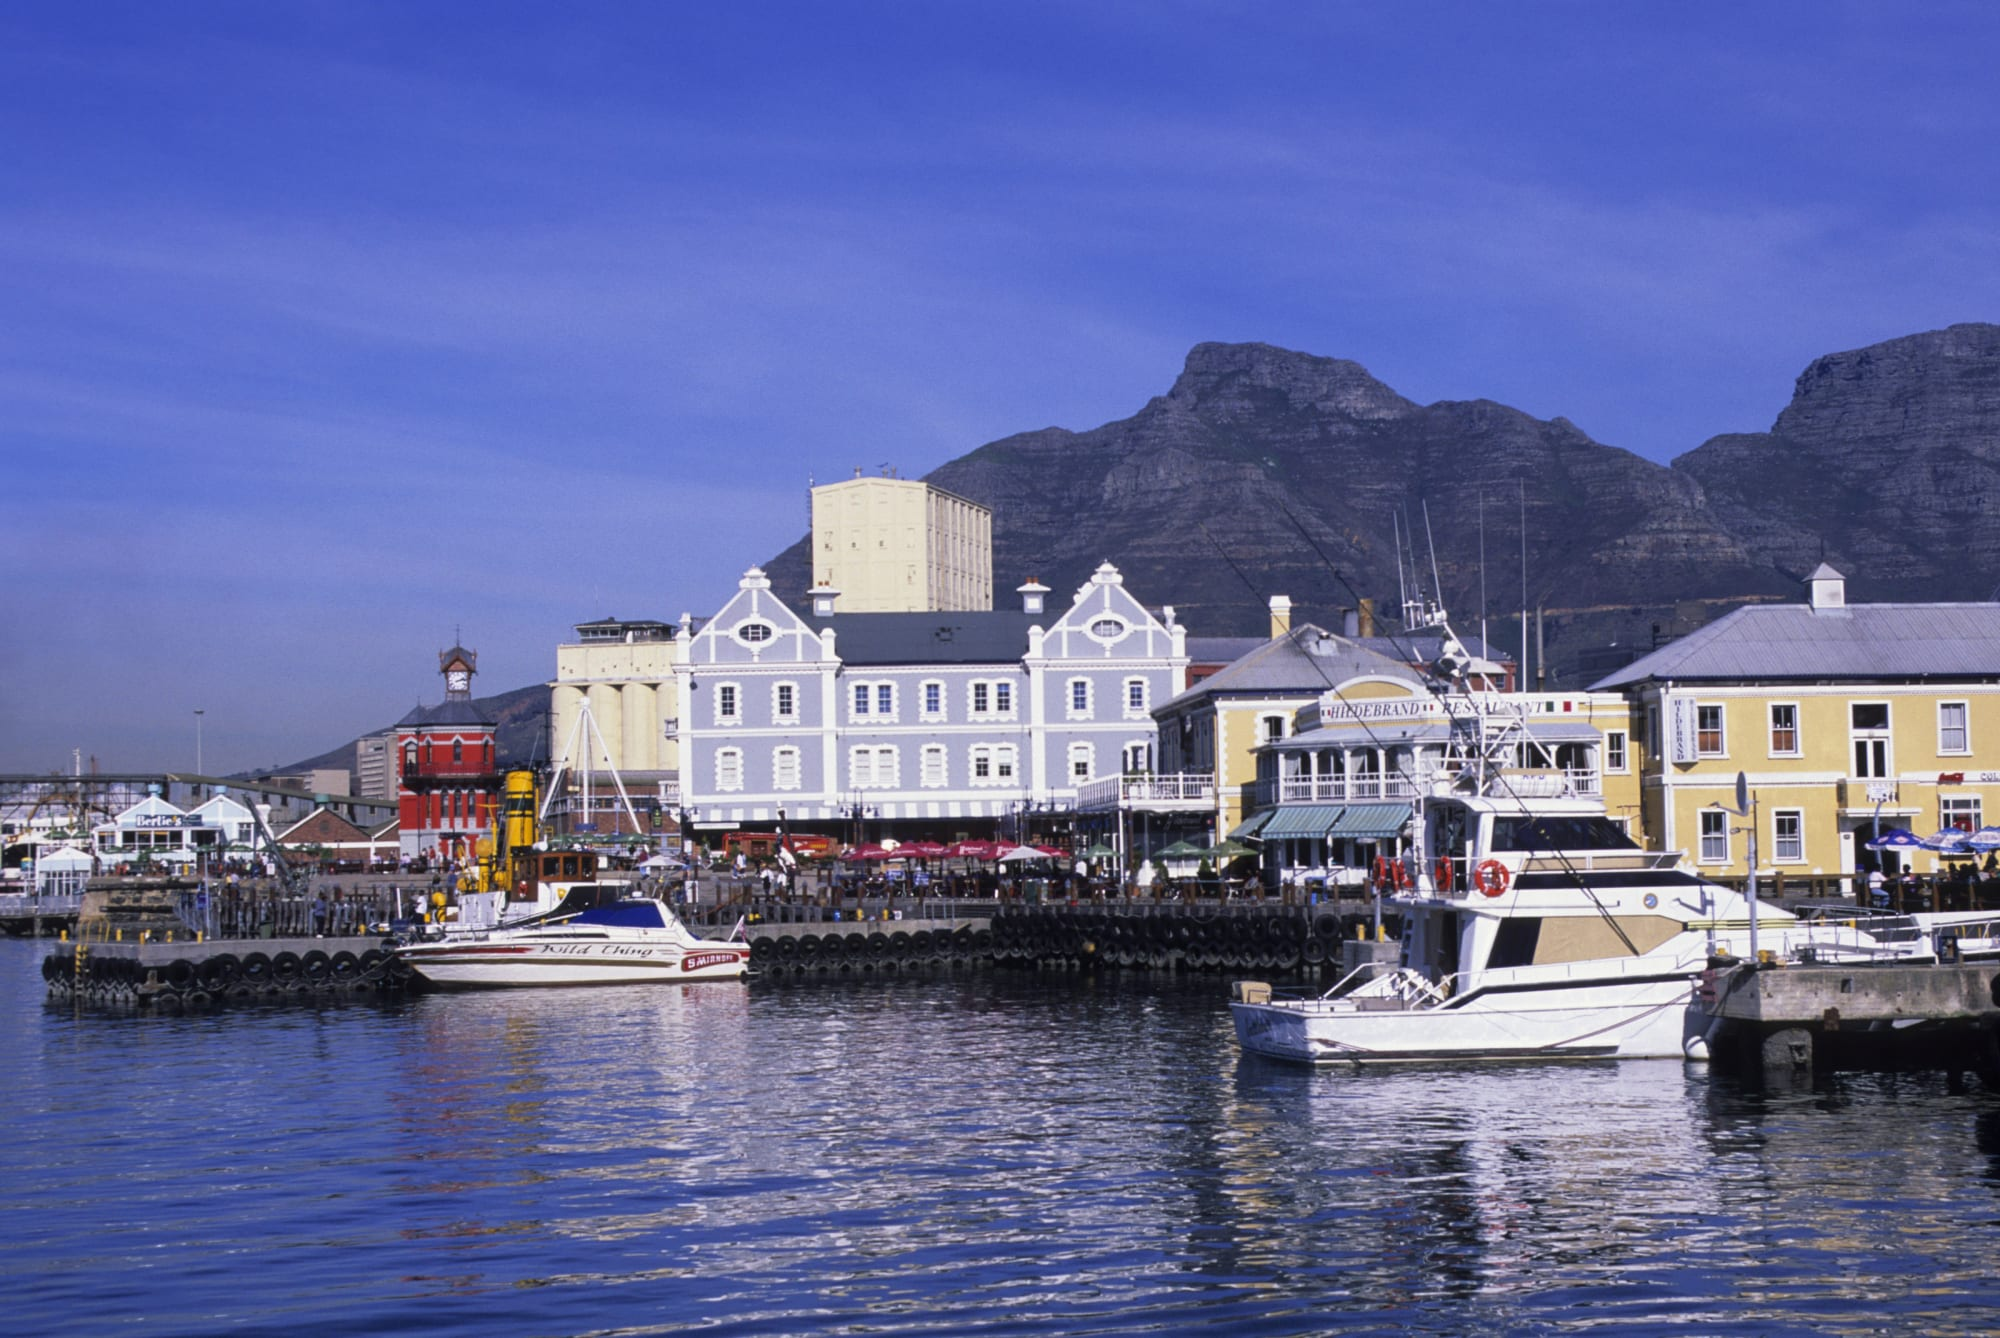 5 things you absolutely have to do in Cape Town, South Africa